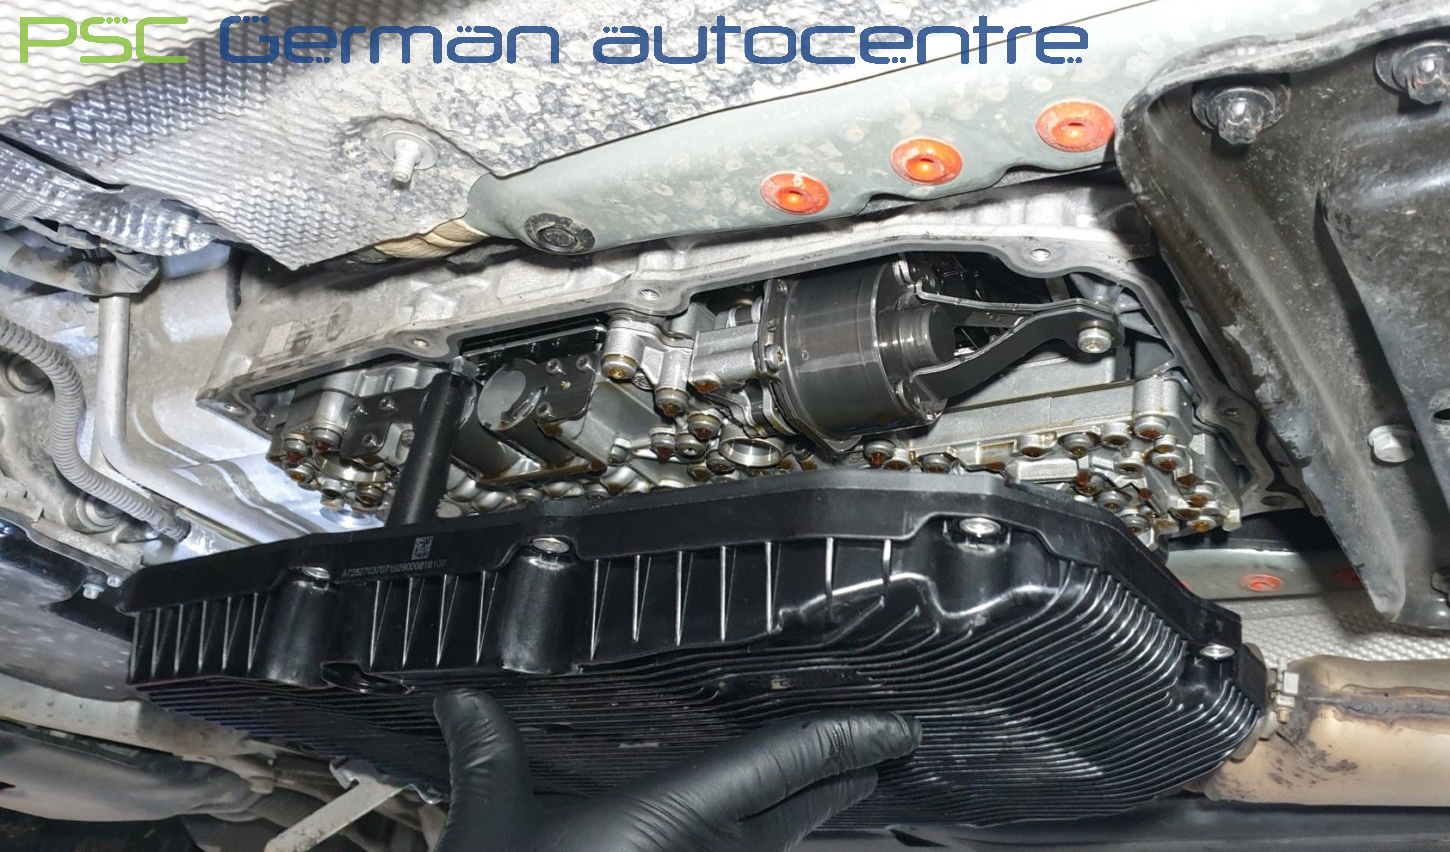 Mercedes 9G-Tronic Automatic Transmission | Gearbox Oil ...